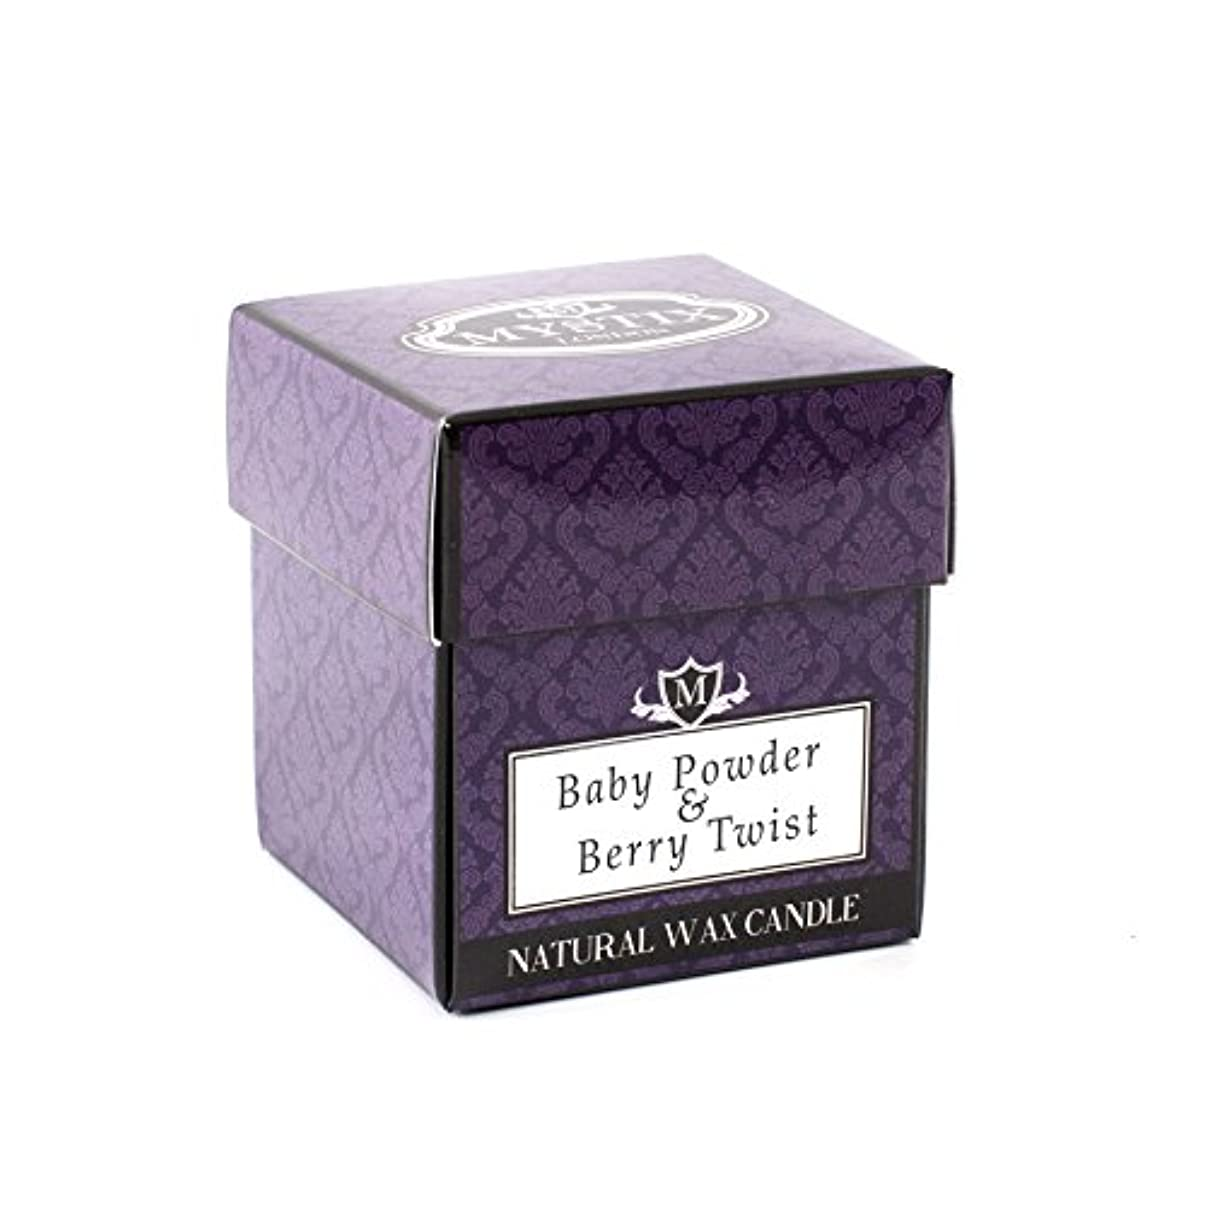 Mystix London | Baby Powder & Berry Twist Scented Candle x 5